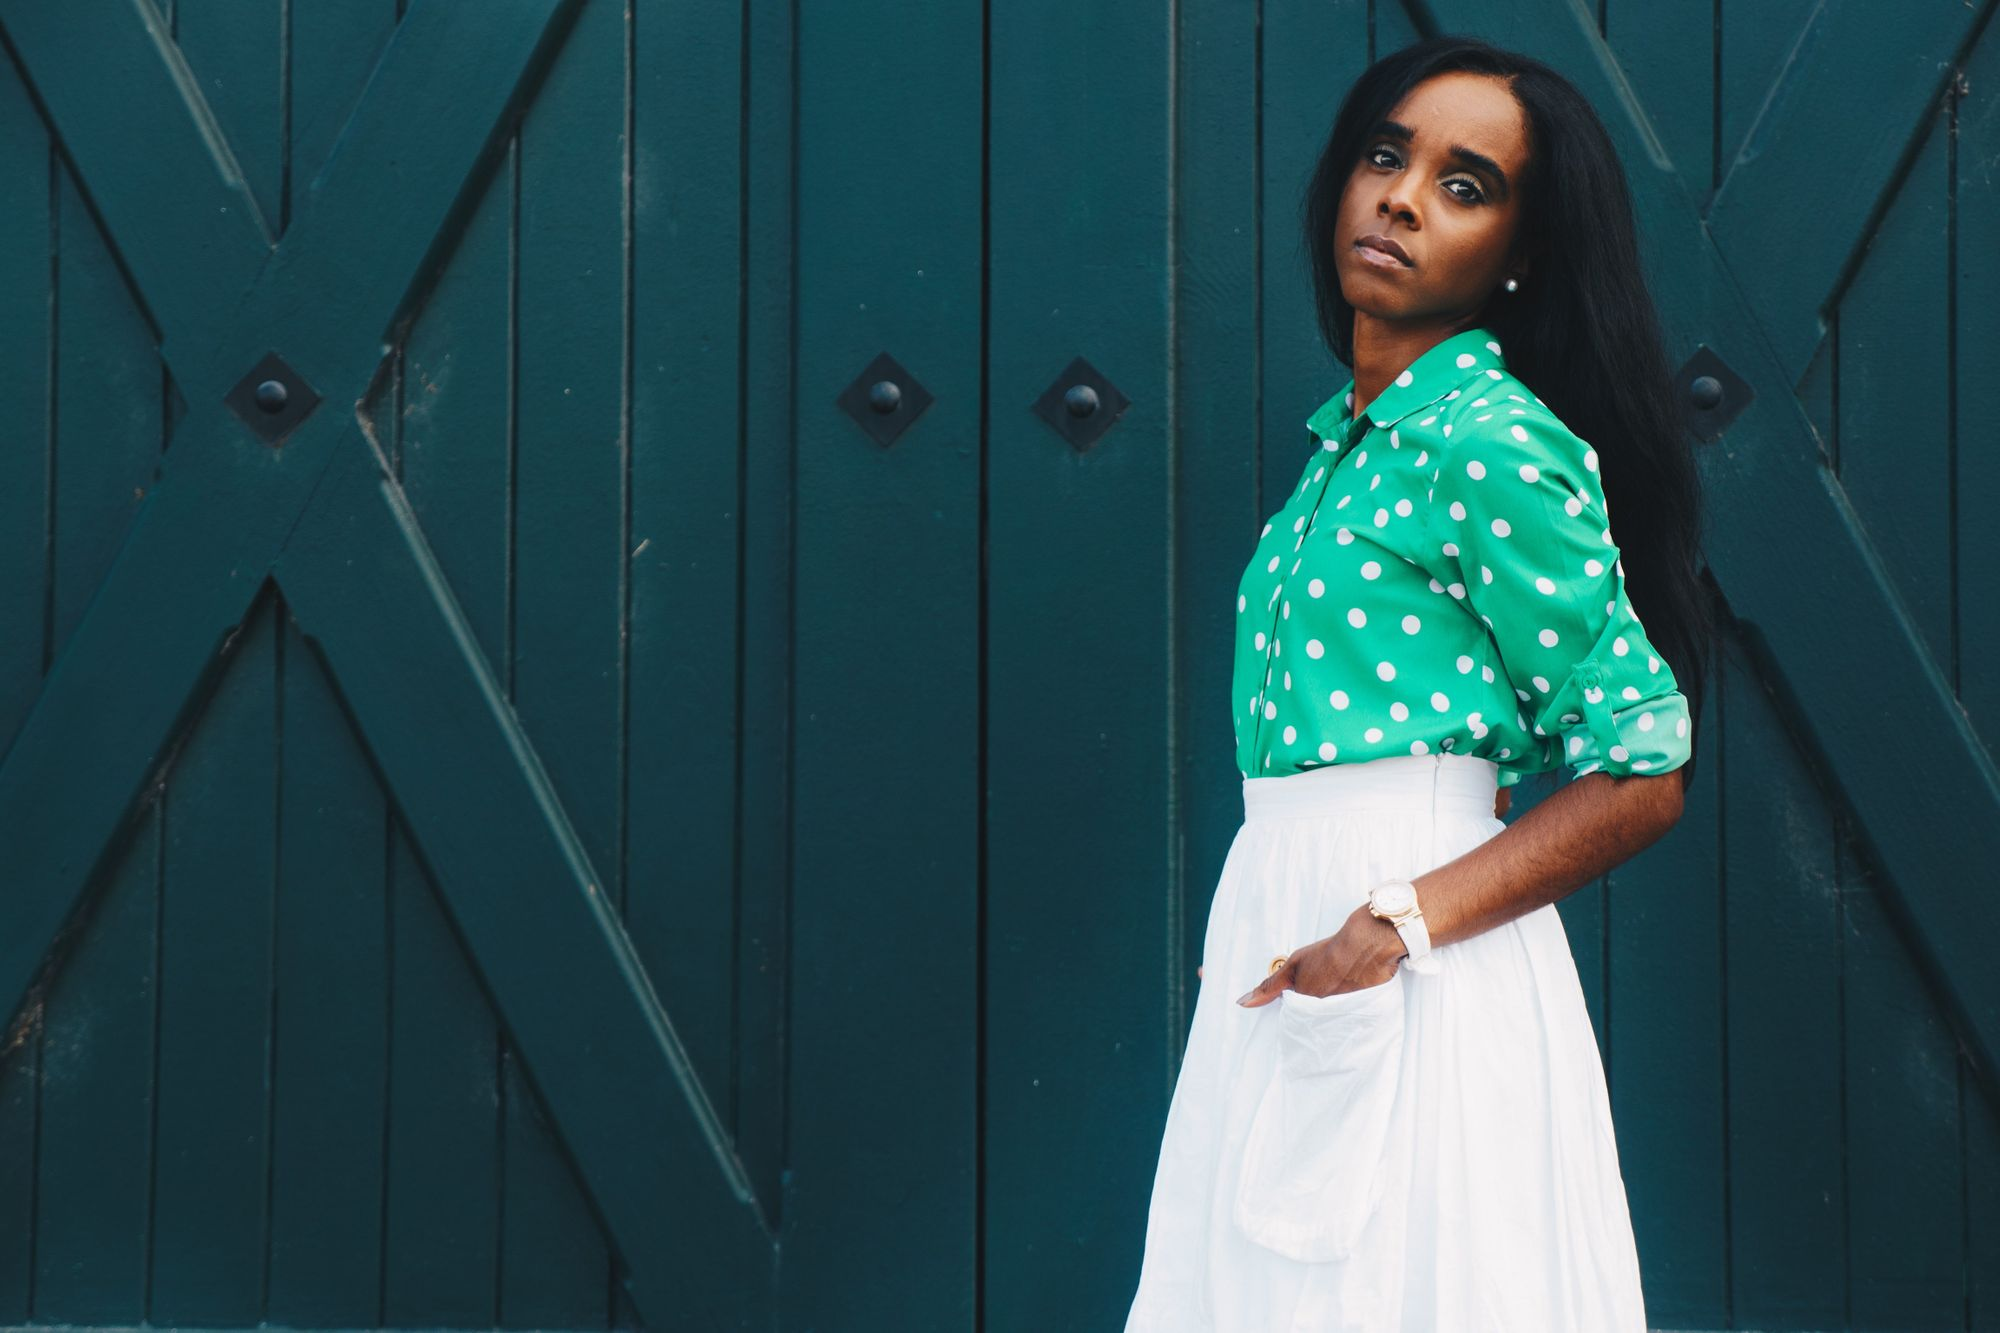 Find a background for your fashion shoot